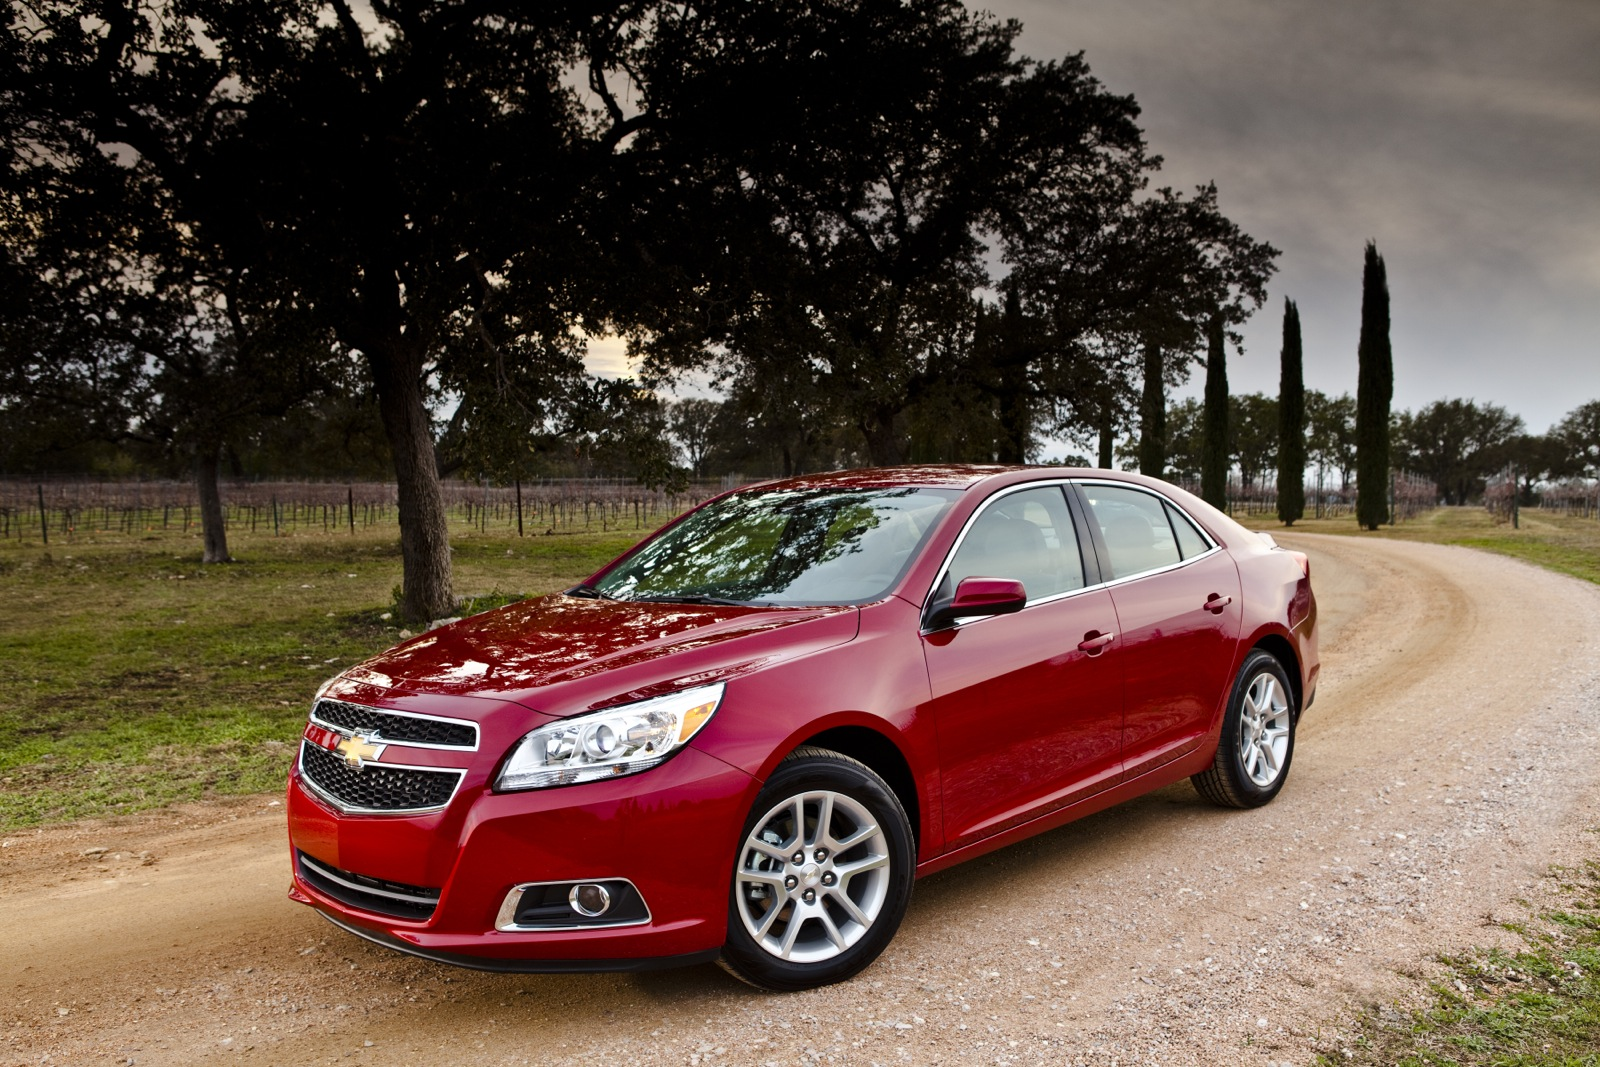 2013 Chevrolet Malibu Chevy Gas Mileage The Car Connection